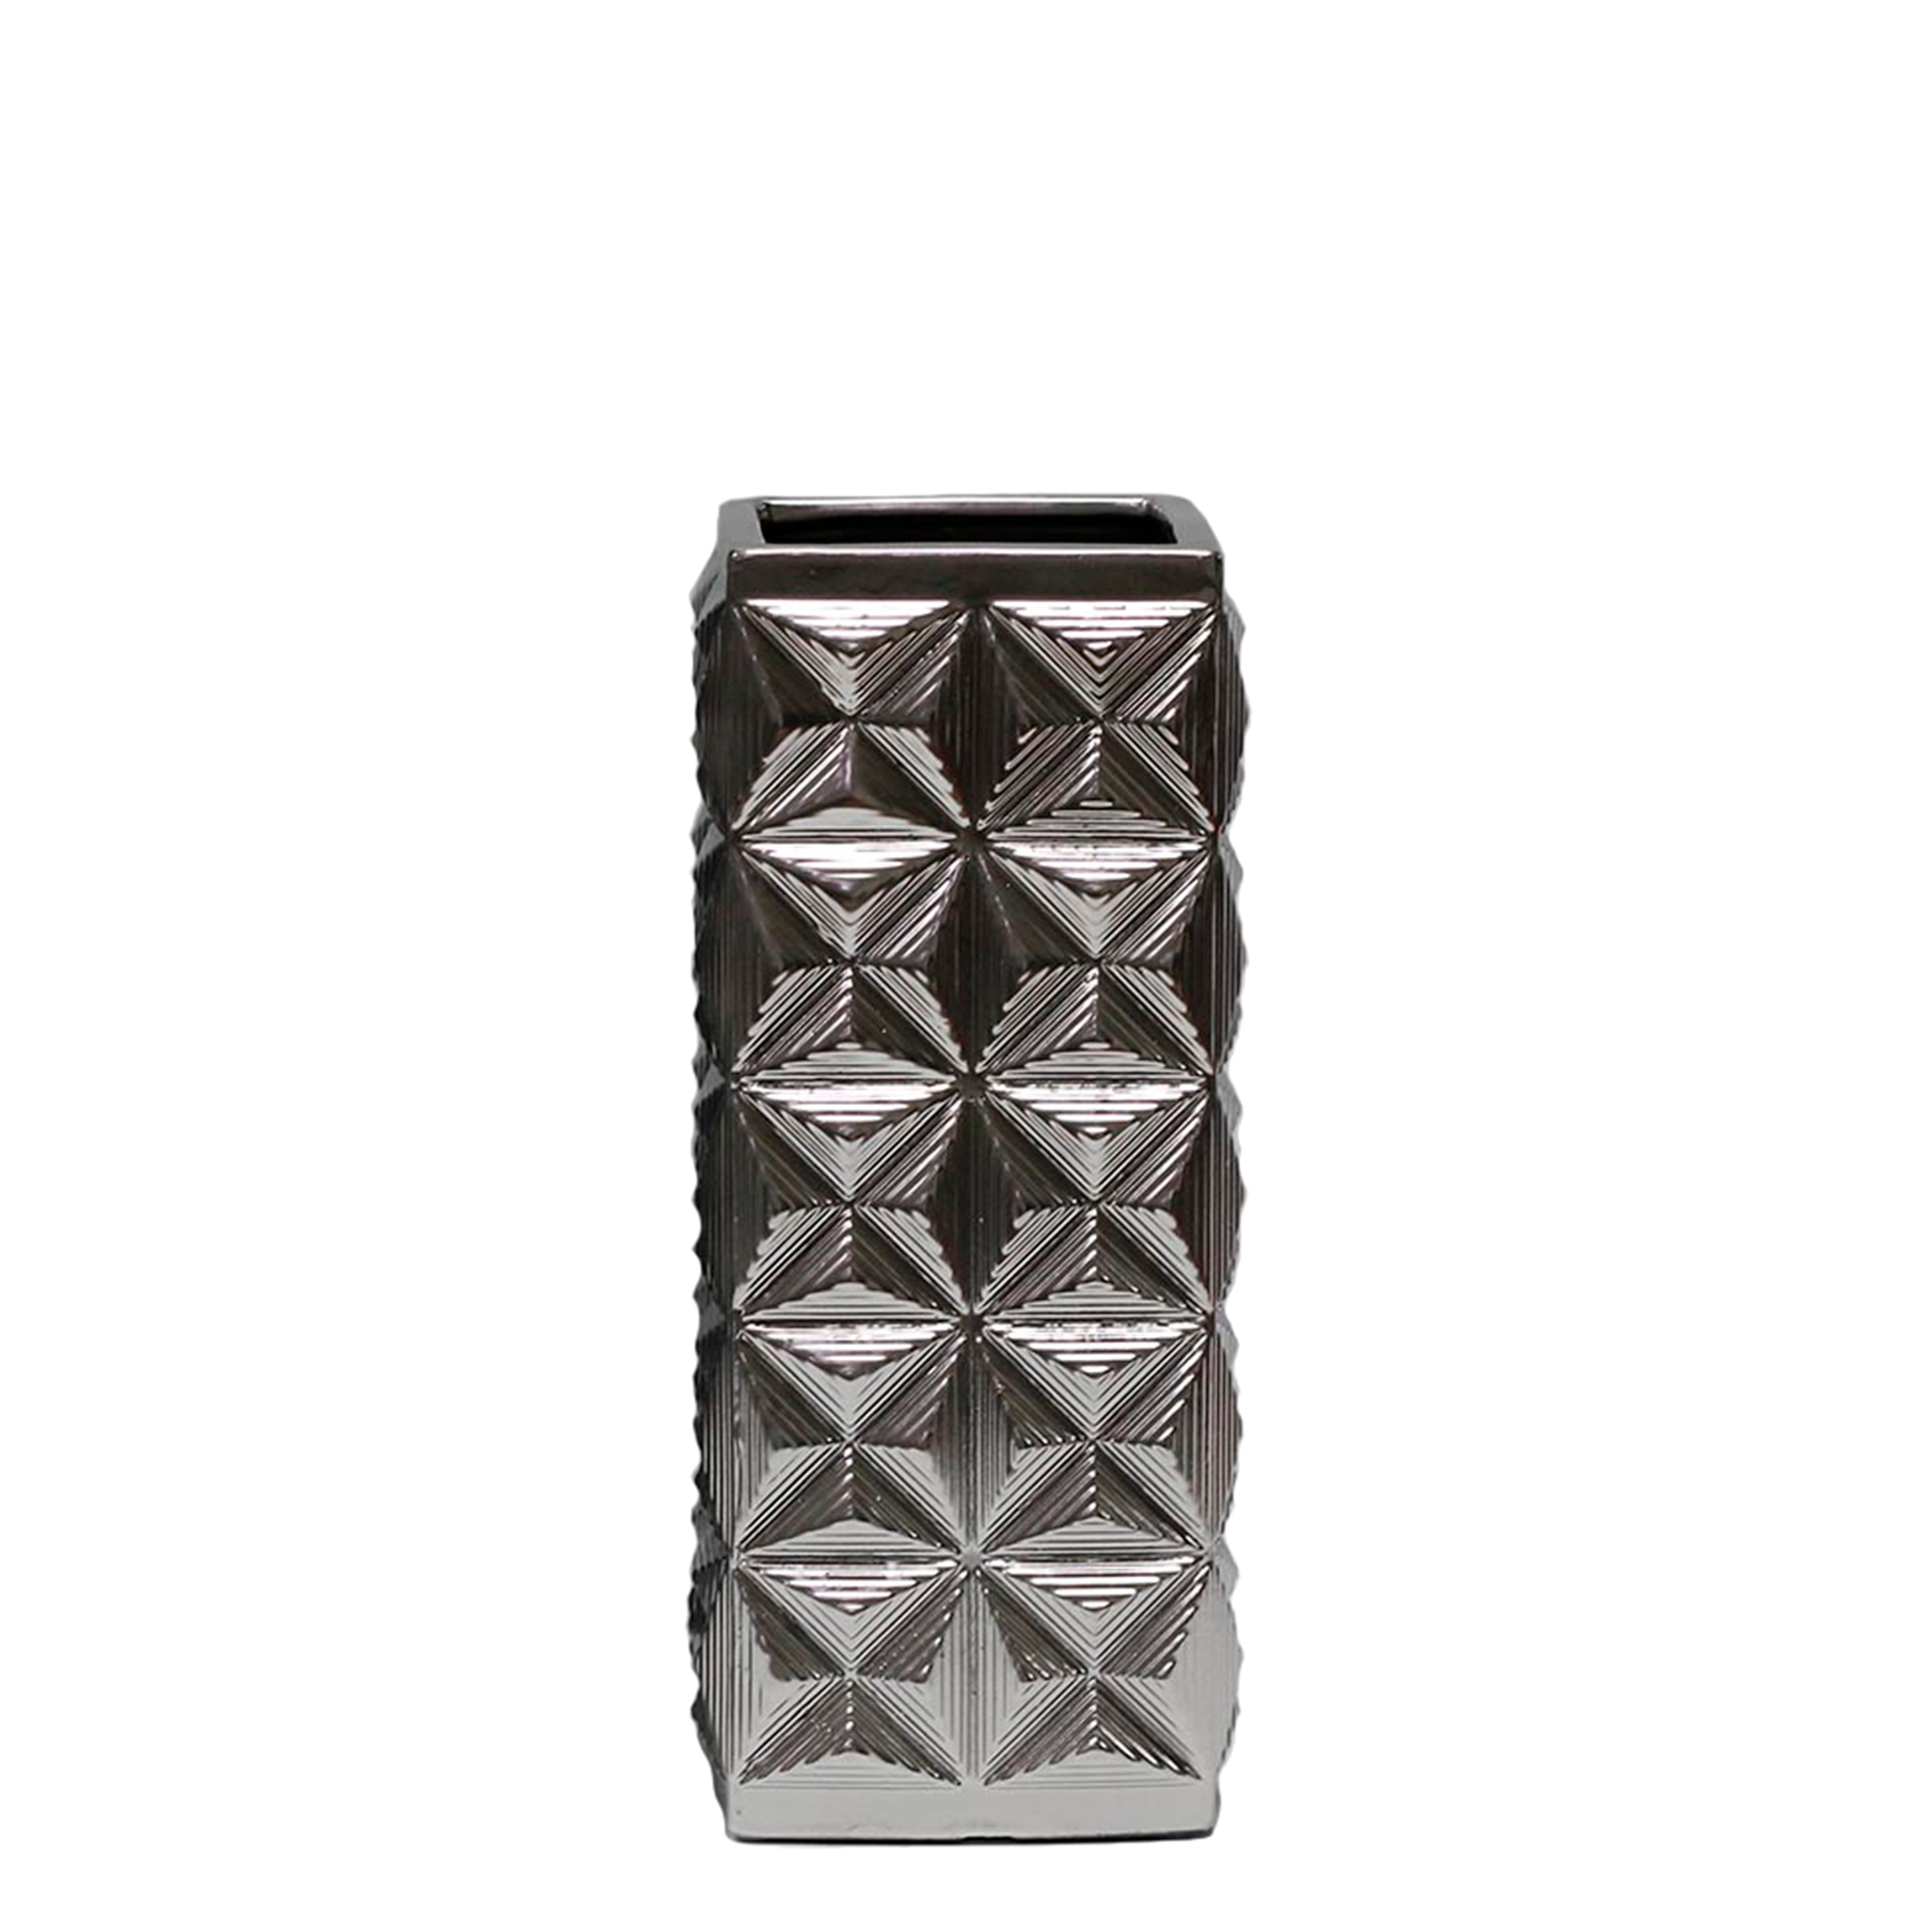 Geometric Vase with Intricate Embossed Design, Small, Matte Silver